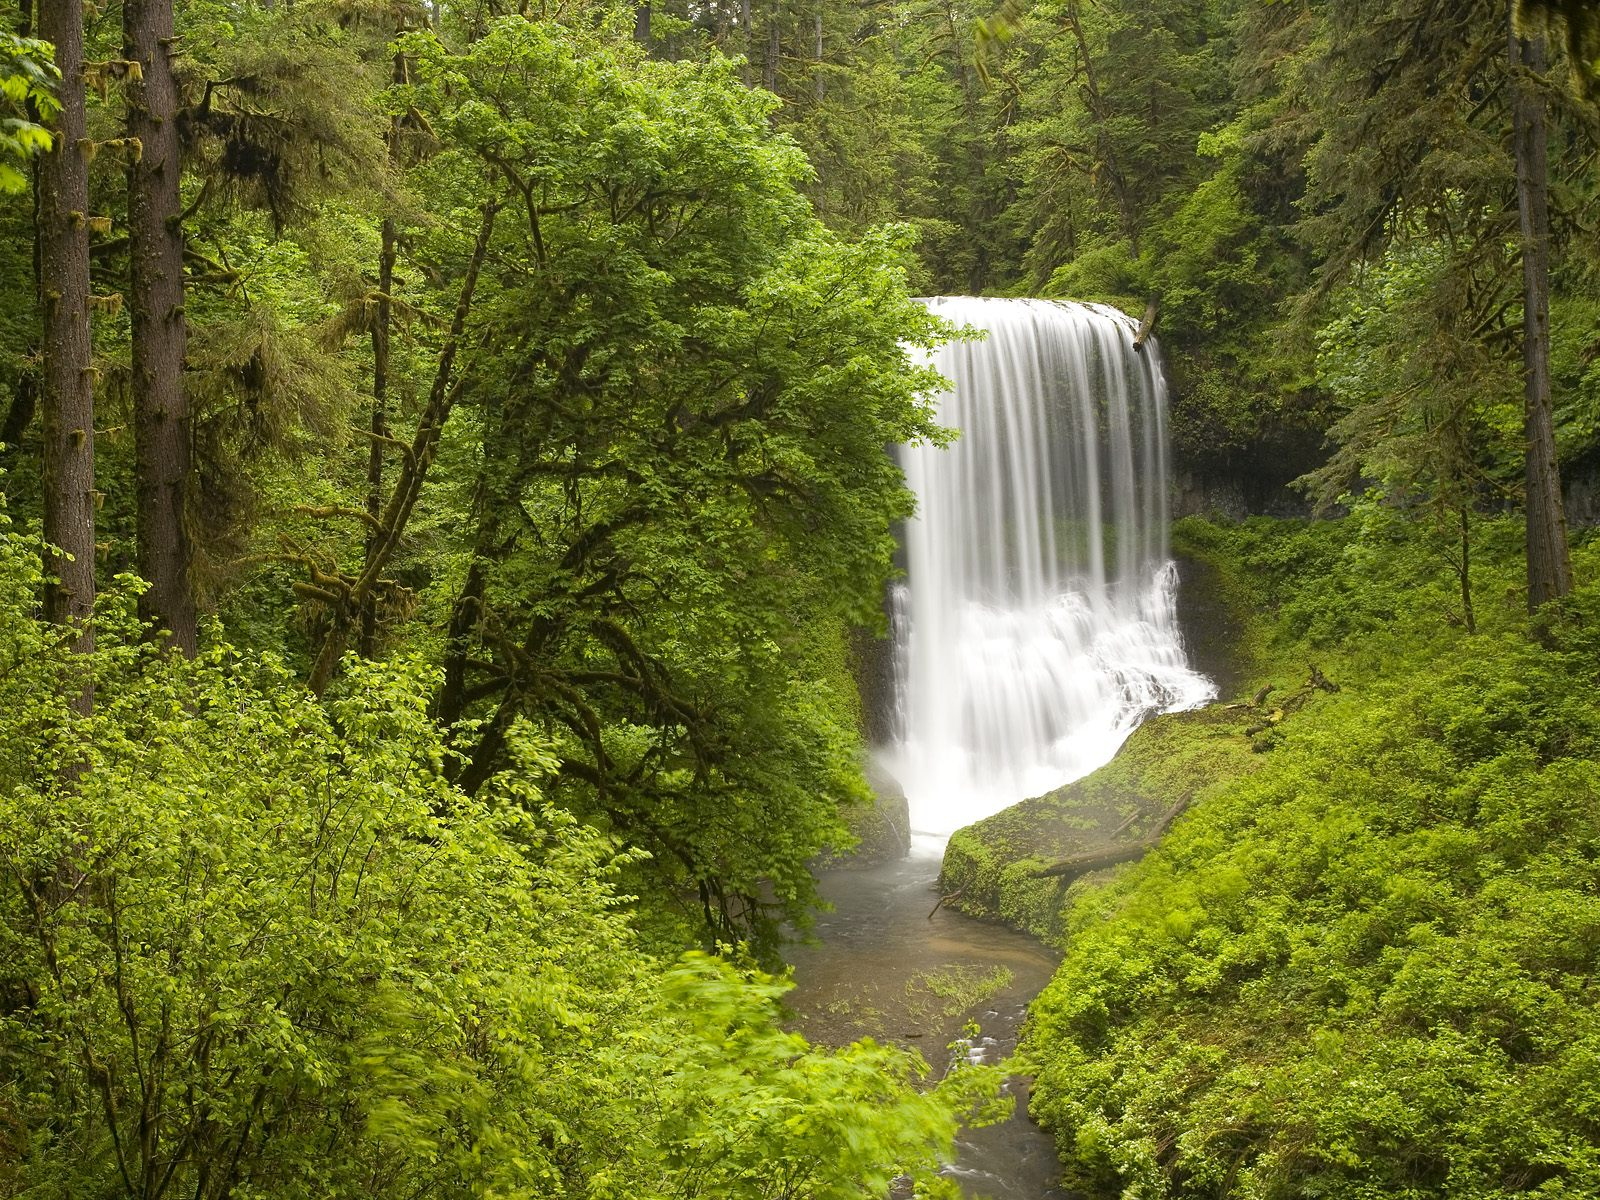 http://3.bp.blogspot.com/_kw1VD16J_Xw/RqoTH3tvSaI/AAAAAAAAAcE/sTNF1xyPjBw/s1600/Middle+North+Falls,+Silver+Falls+State+Park+in+Spring,+Oregon.jpg